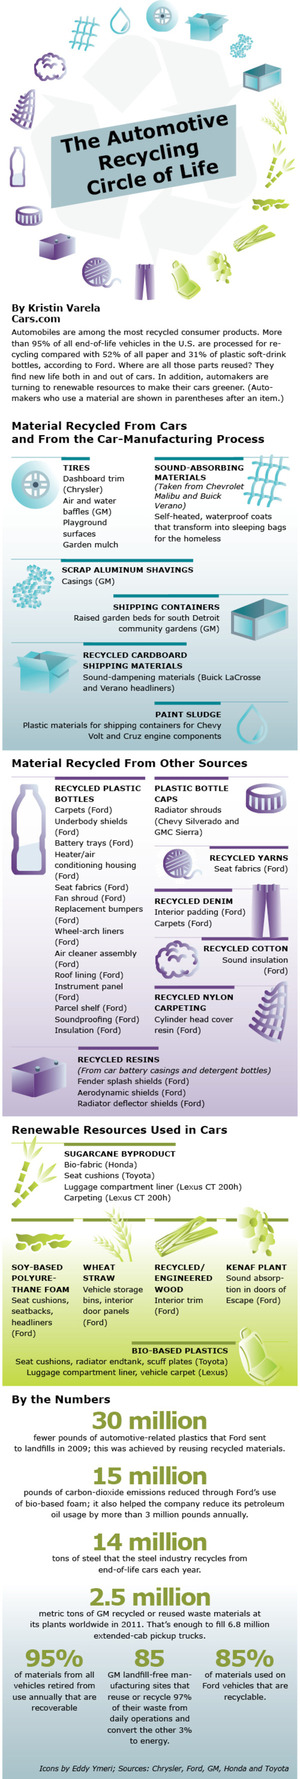 How Automakers Recycle [Infographic] via cars.com